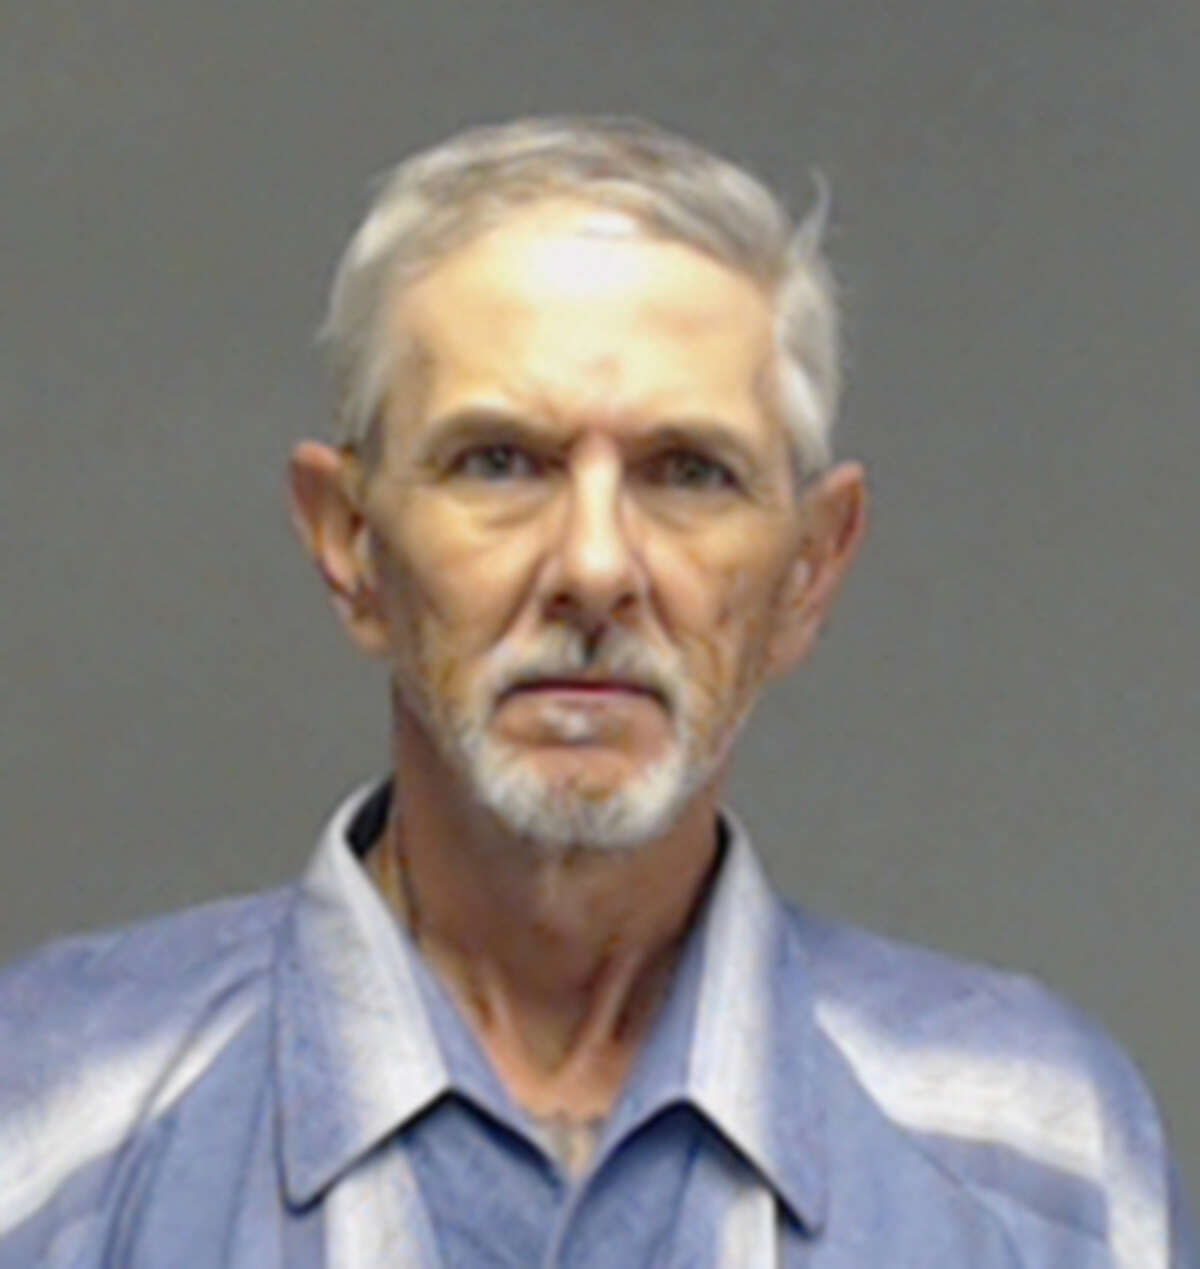 John Cyrus Gilbreath, 47, was arrested on numerous charges following a traffic stop. He is now a person of interest in a cold case from the 1980s after authorities they found several pieces of evidence relating to the victims at his home.